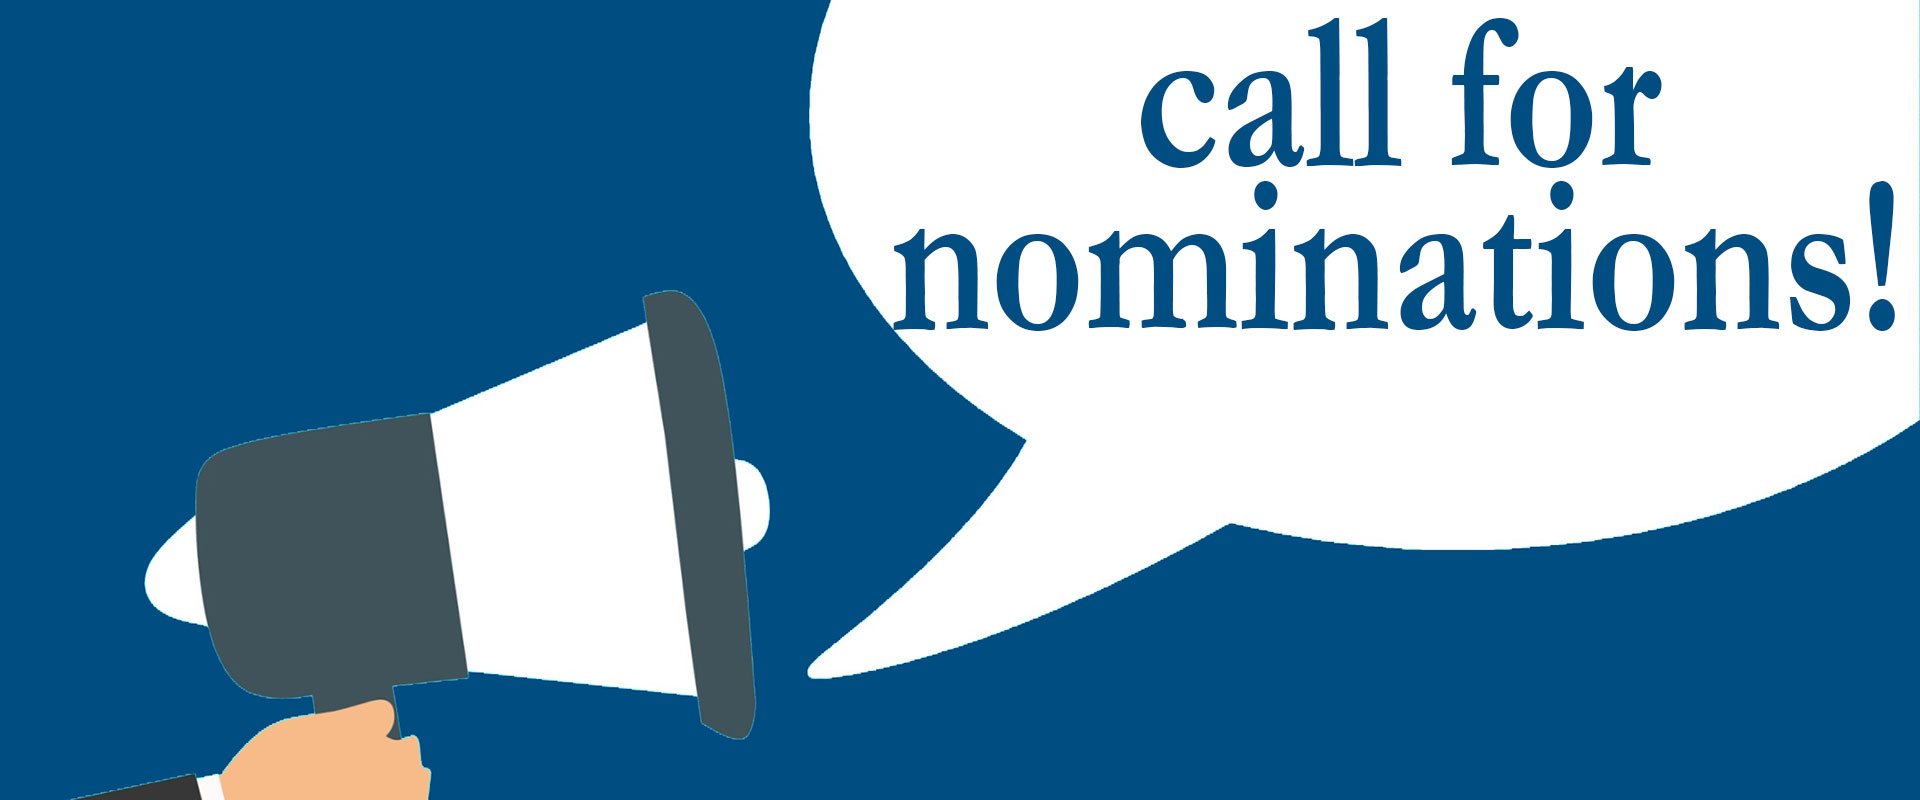 LCDC Call for Nominations.